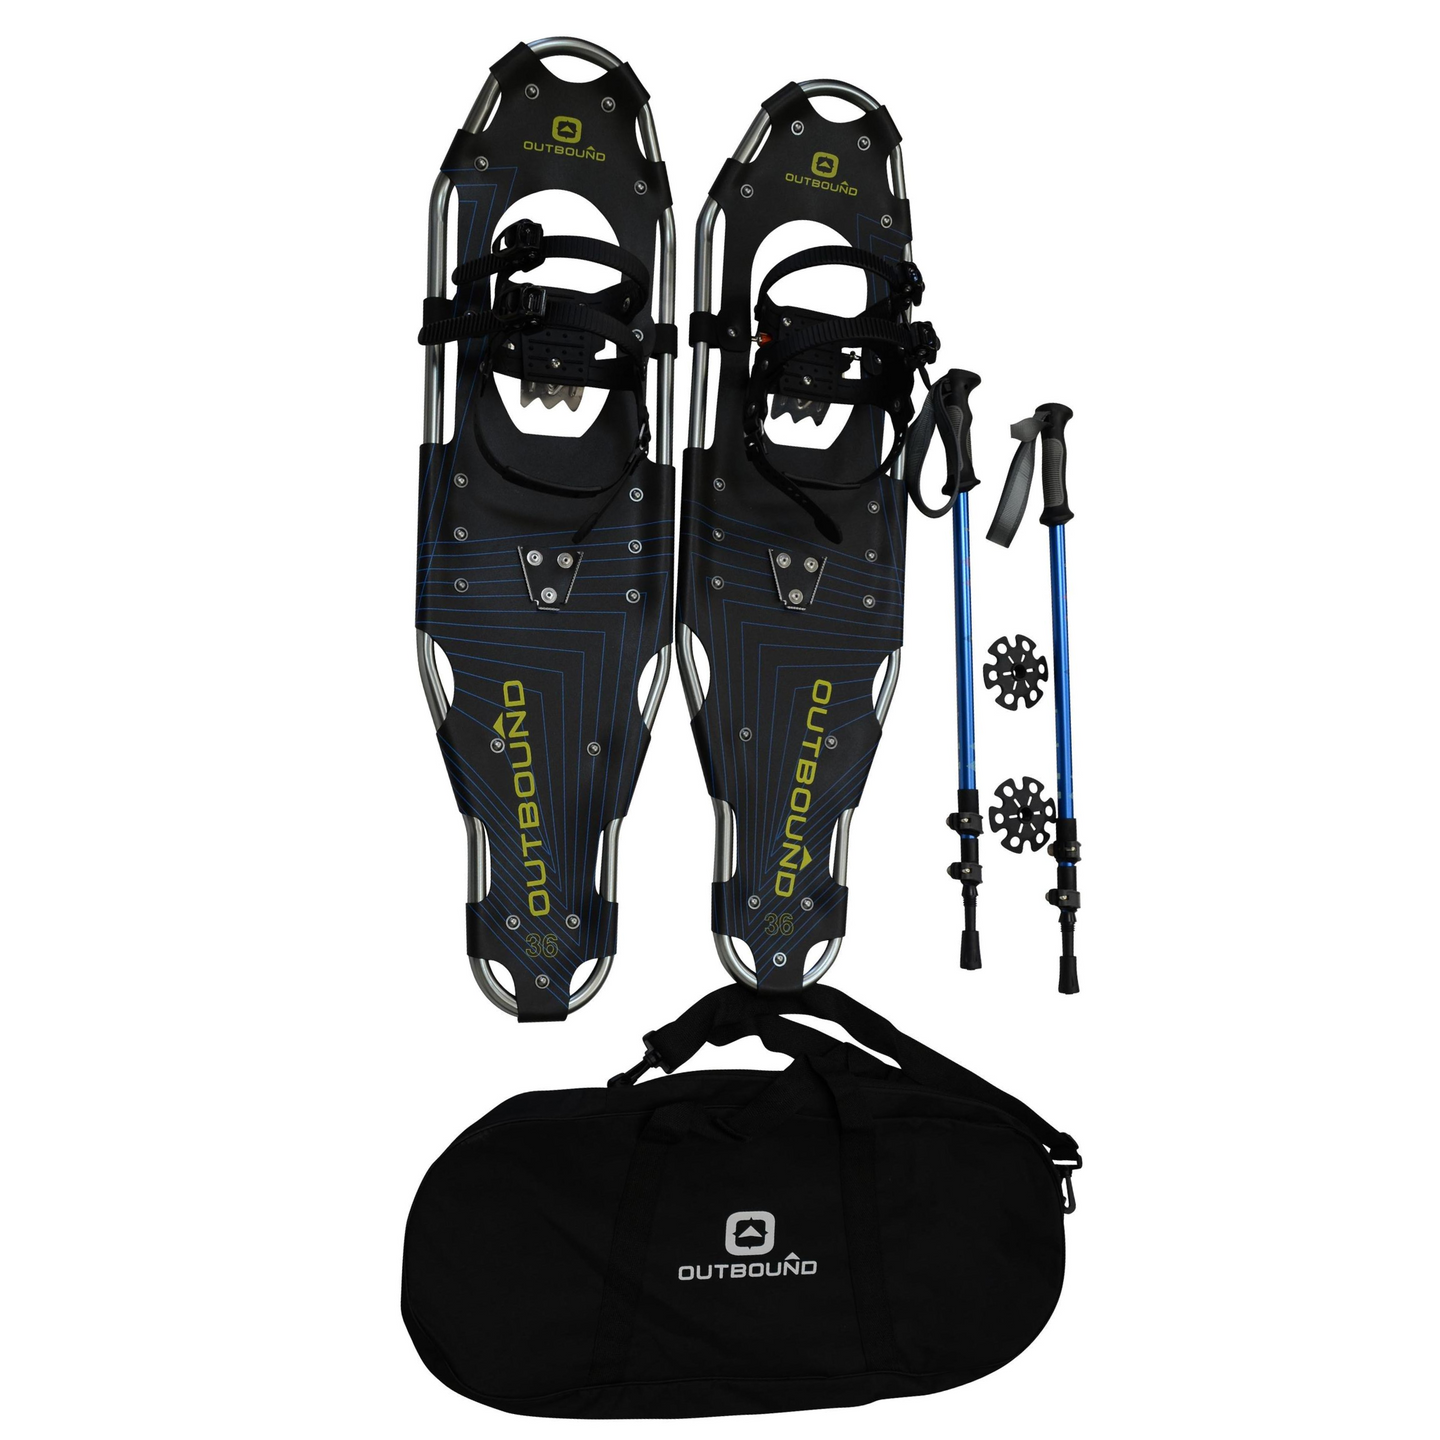 outbound snowshoes bundle 36-inch-260-lb-capacity-with-adjustable-poles-and-carry bag